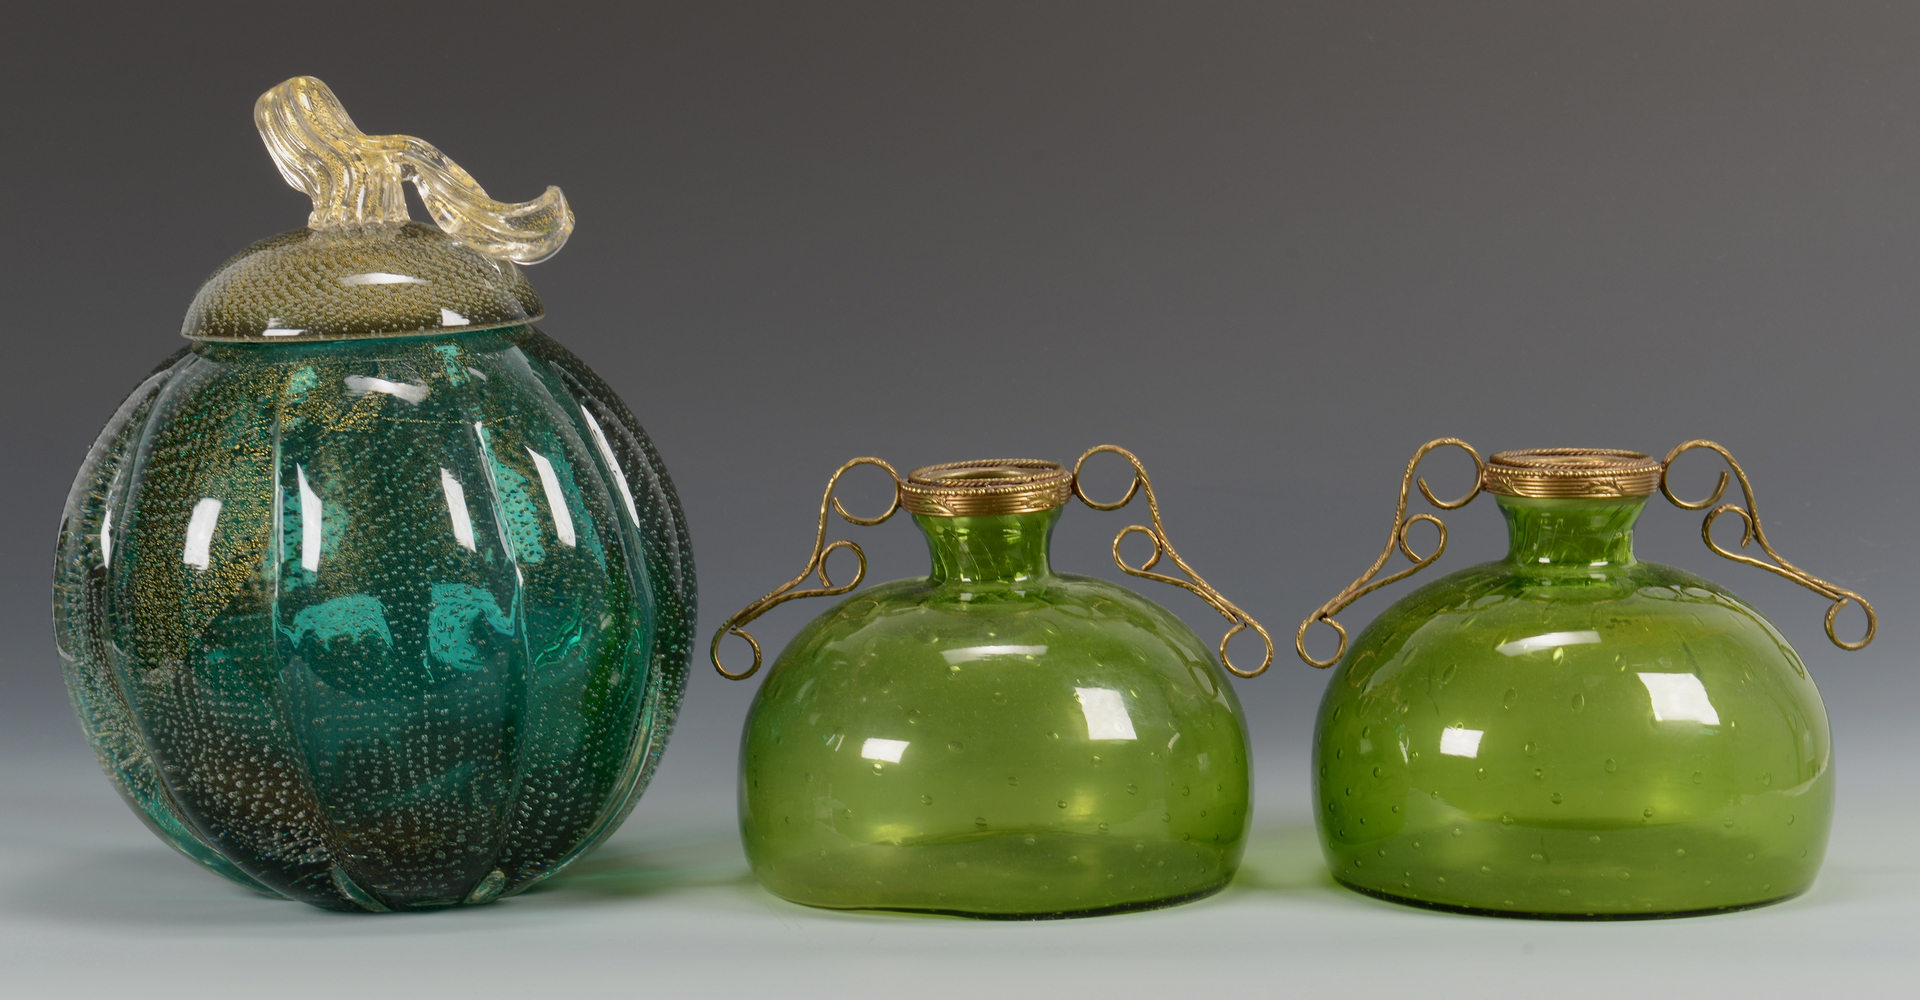 Lot 486: Group of 5 Murano Glass objects